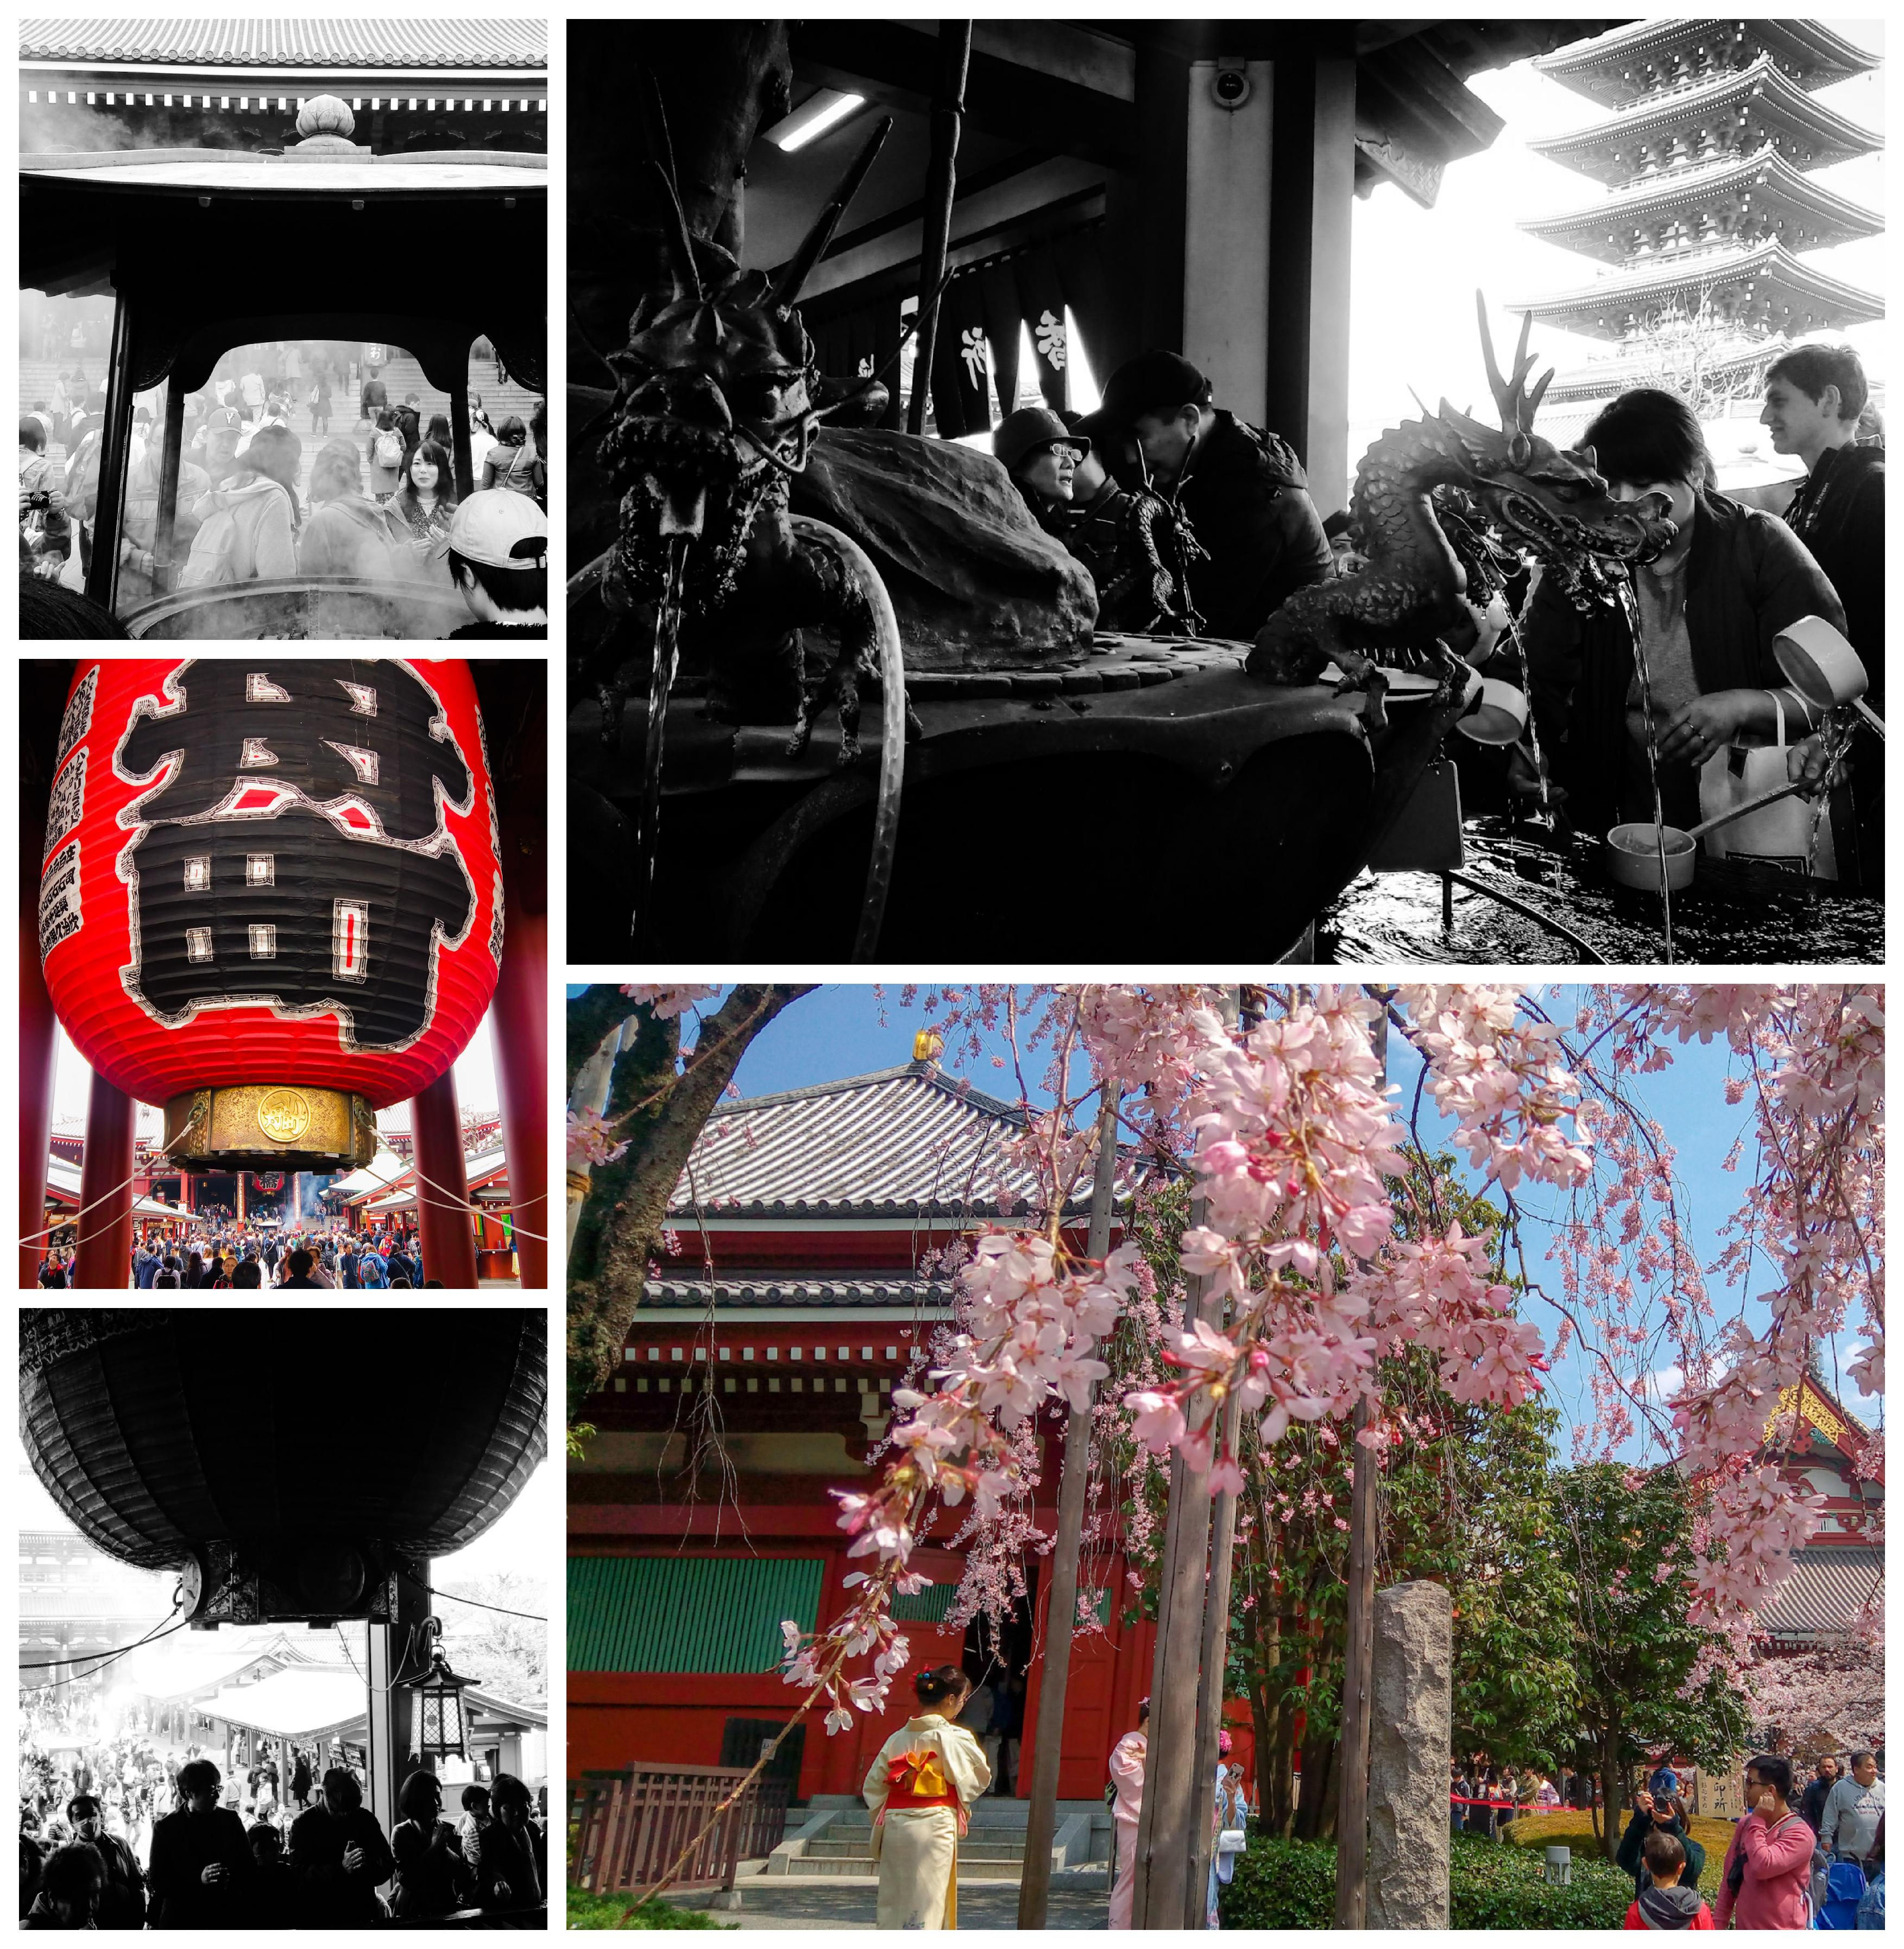 Urban Photos - Asakusa, Tokyo, Japan. 'Senso-ji Temple.' Tokyo's oldest temple (645), and the world's most visited spiritual location (over 30 million a year), can be found in Asakusa. Thought it was destroyed in WW2, the main shrine and five story pagoda have been immaculately reconstructed. Visitors enter through the famous Kaminarimon - Thunder Gate. During my time there, I noticed many locals dressed in traditional kimonos taking selfies under the cherry blossom. sketchbookexplorer.com @davidasutton @sketchbookexplorer Facebook.com/davidanthonysutton #japan #tokyo #asakusa #Sensojitemple #travel #travelblog #photography #cheeryblossom #cherryblossomseason #cherryblossomjapan